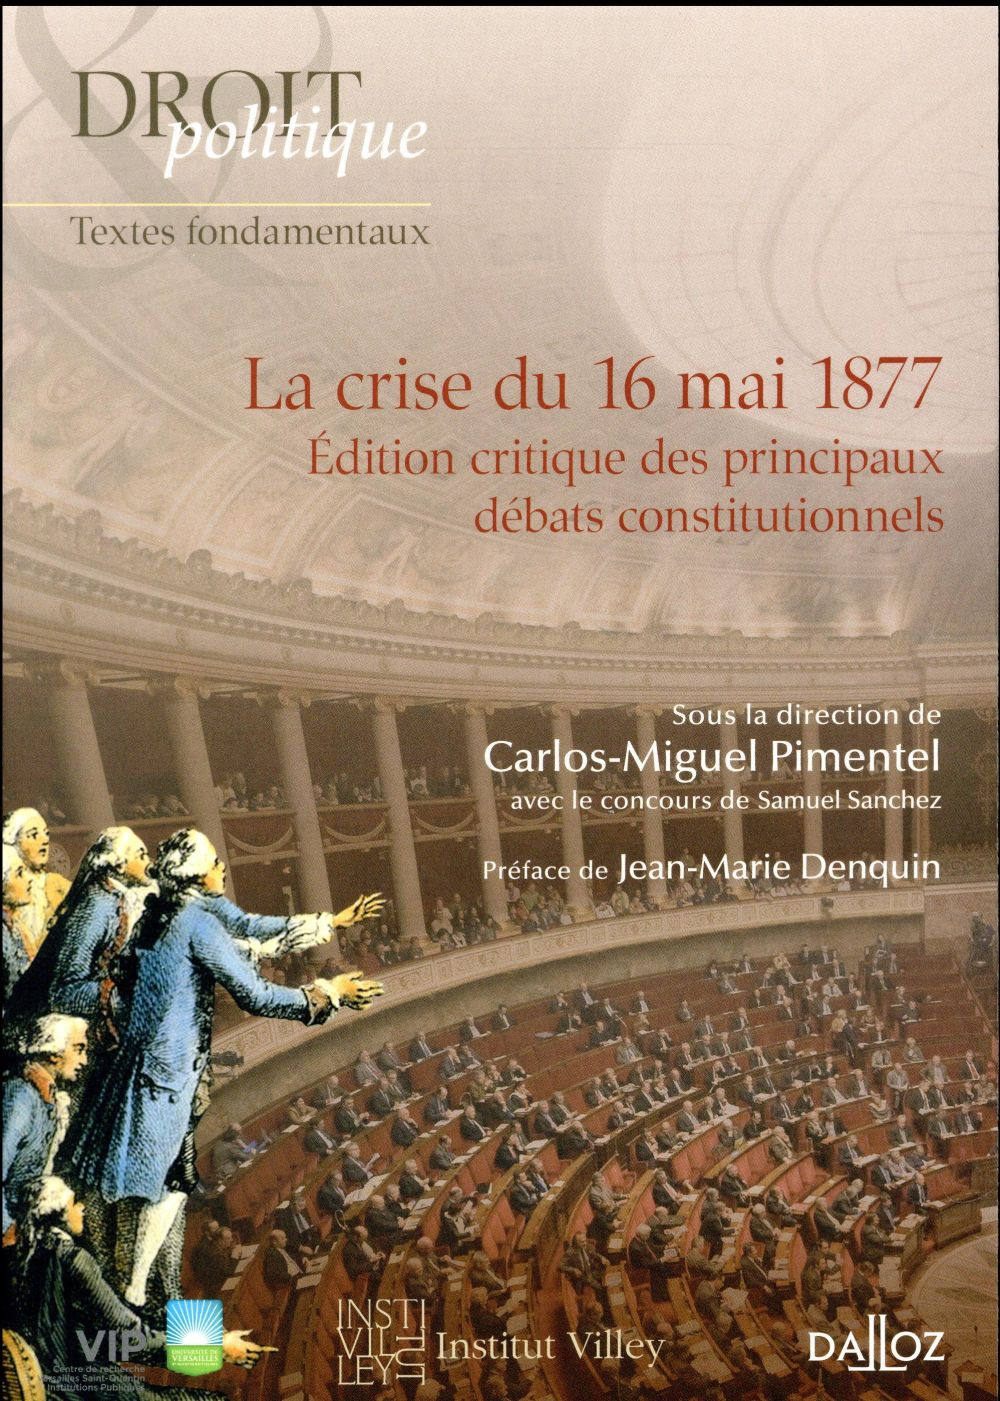 La crise du 16 mai 1877 (1re édition)